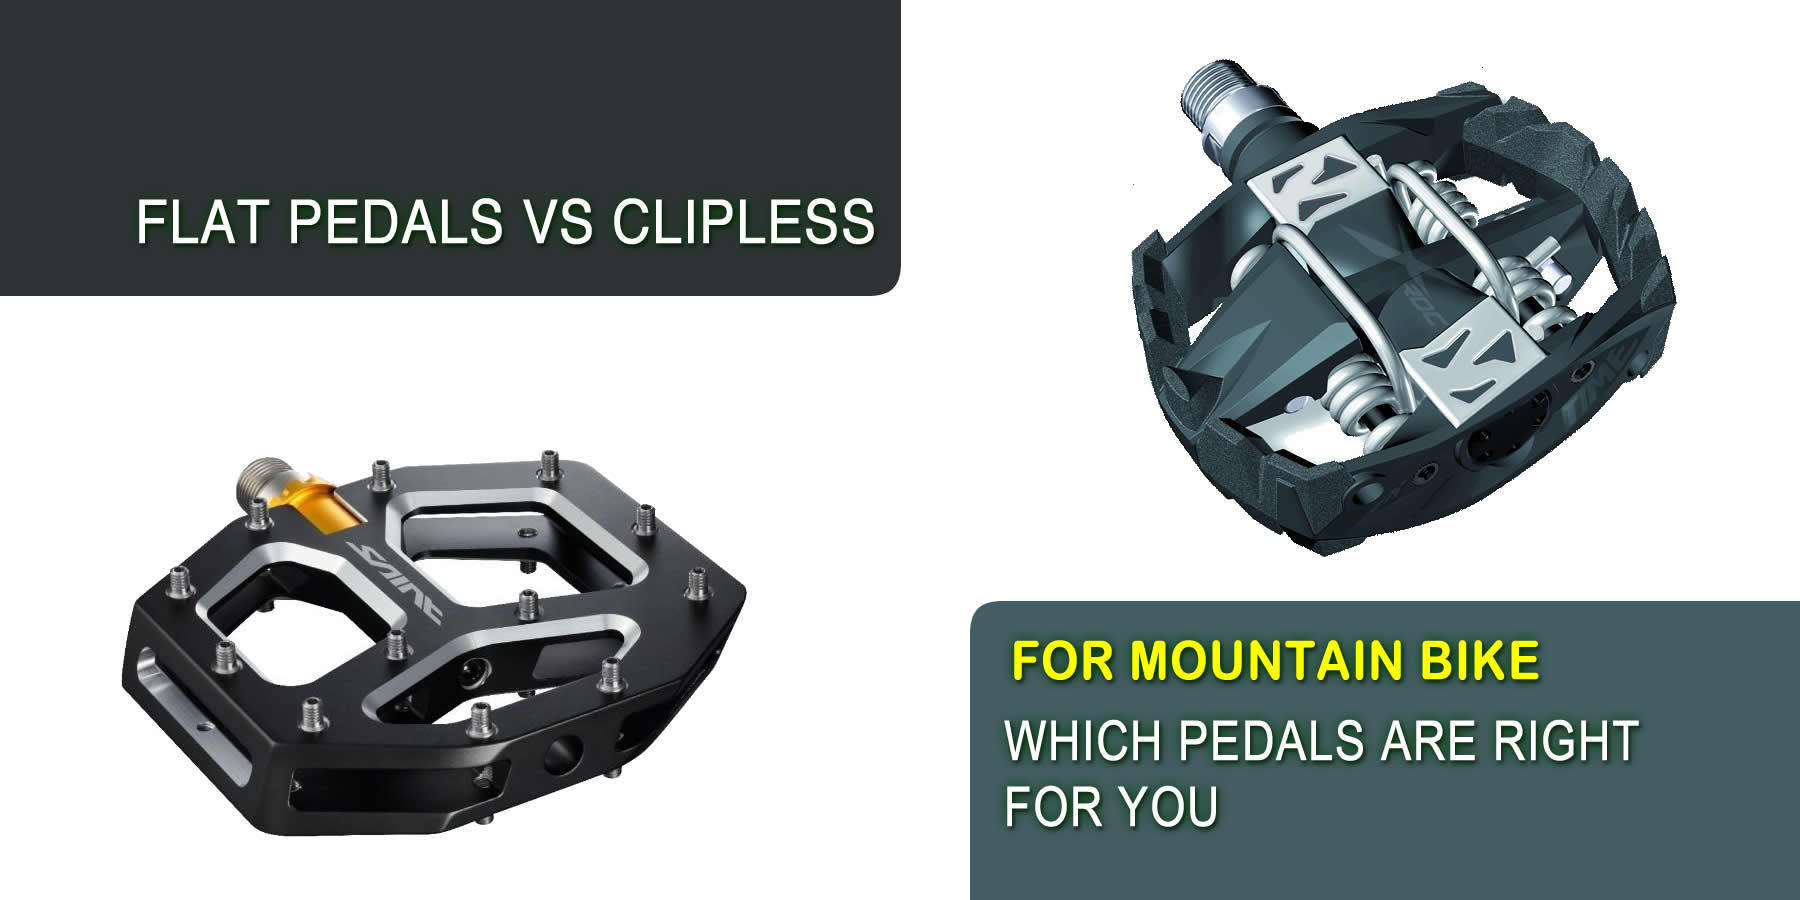 Flat Pedals vs Clipless For Mountain Bike